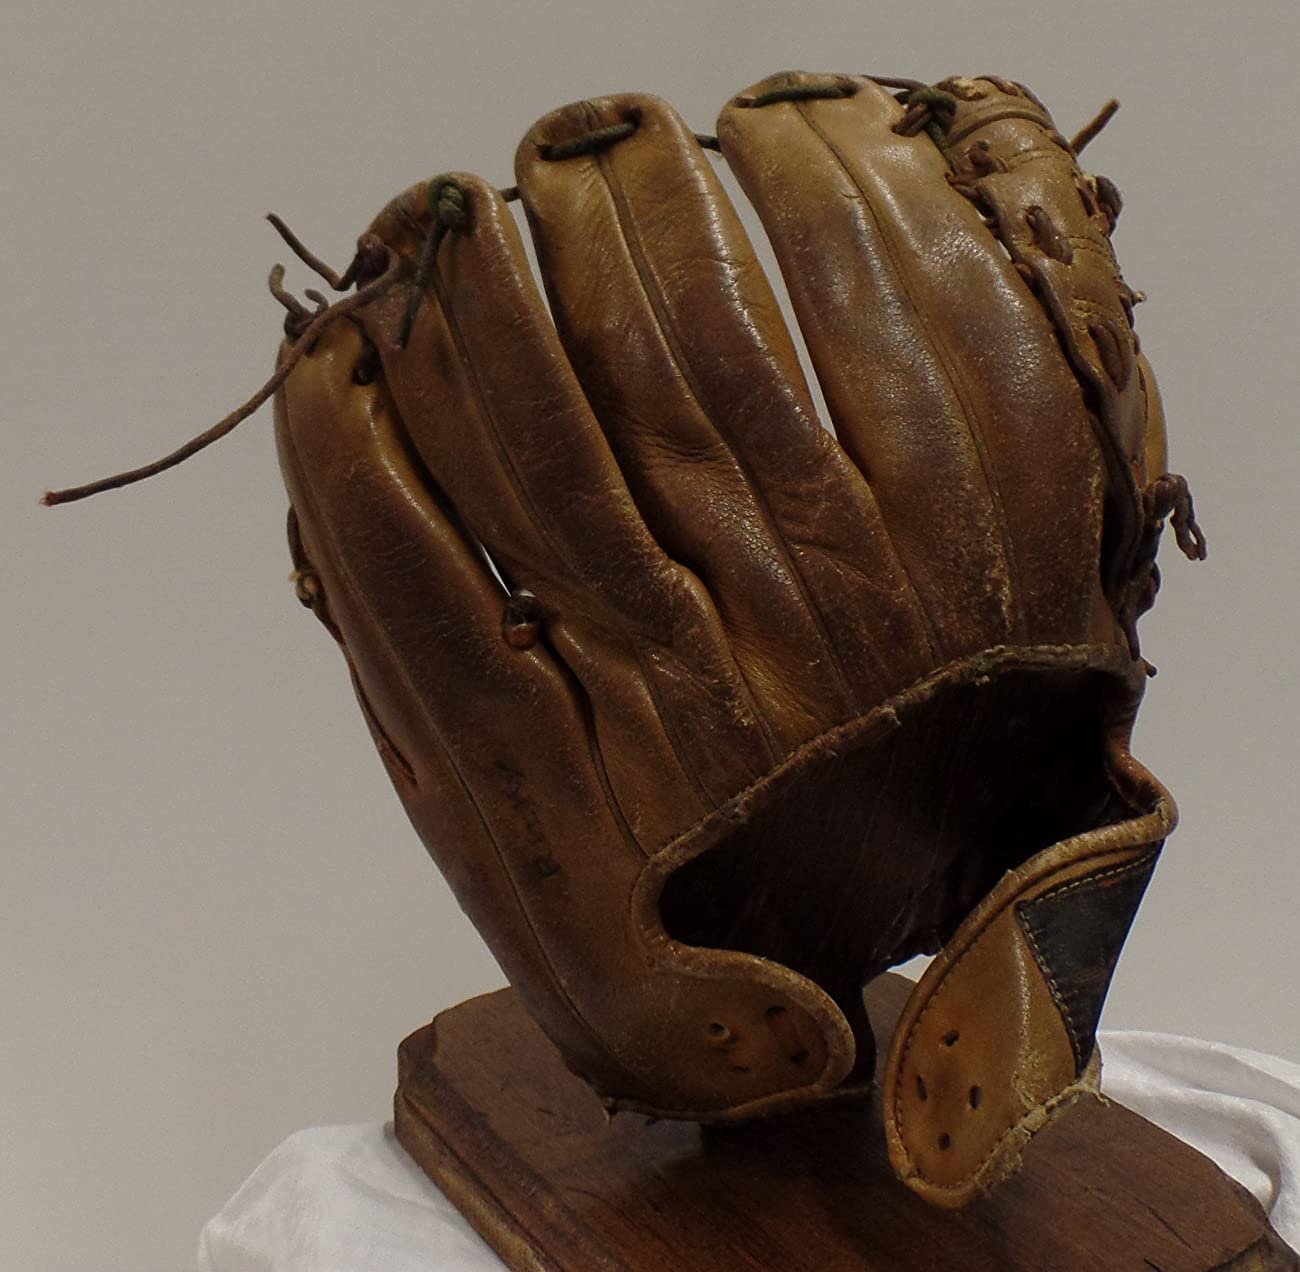 Vintage Clete Boyer Autograph Model 1035 Baseball Glove - Great for Mancave or Baseball Themed Decor (Free Shipping) 4